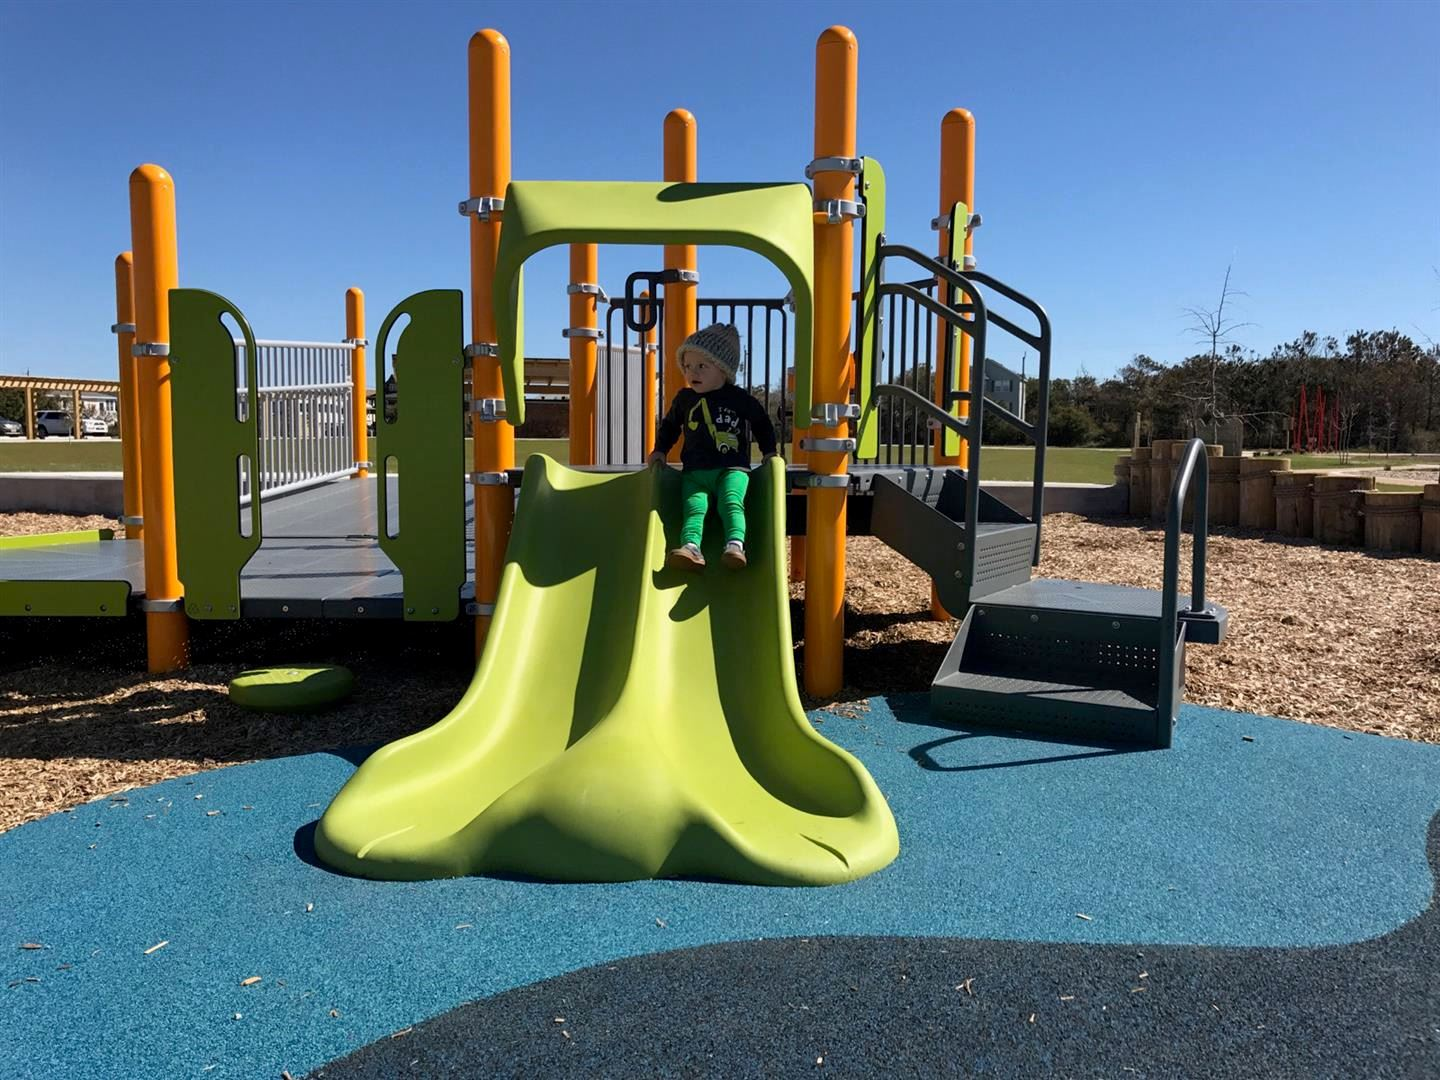 Child on a Green Slide